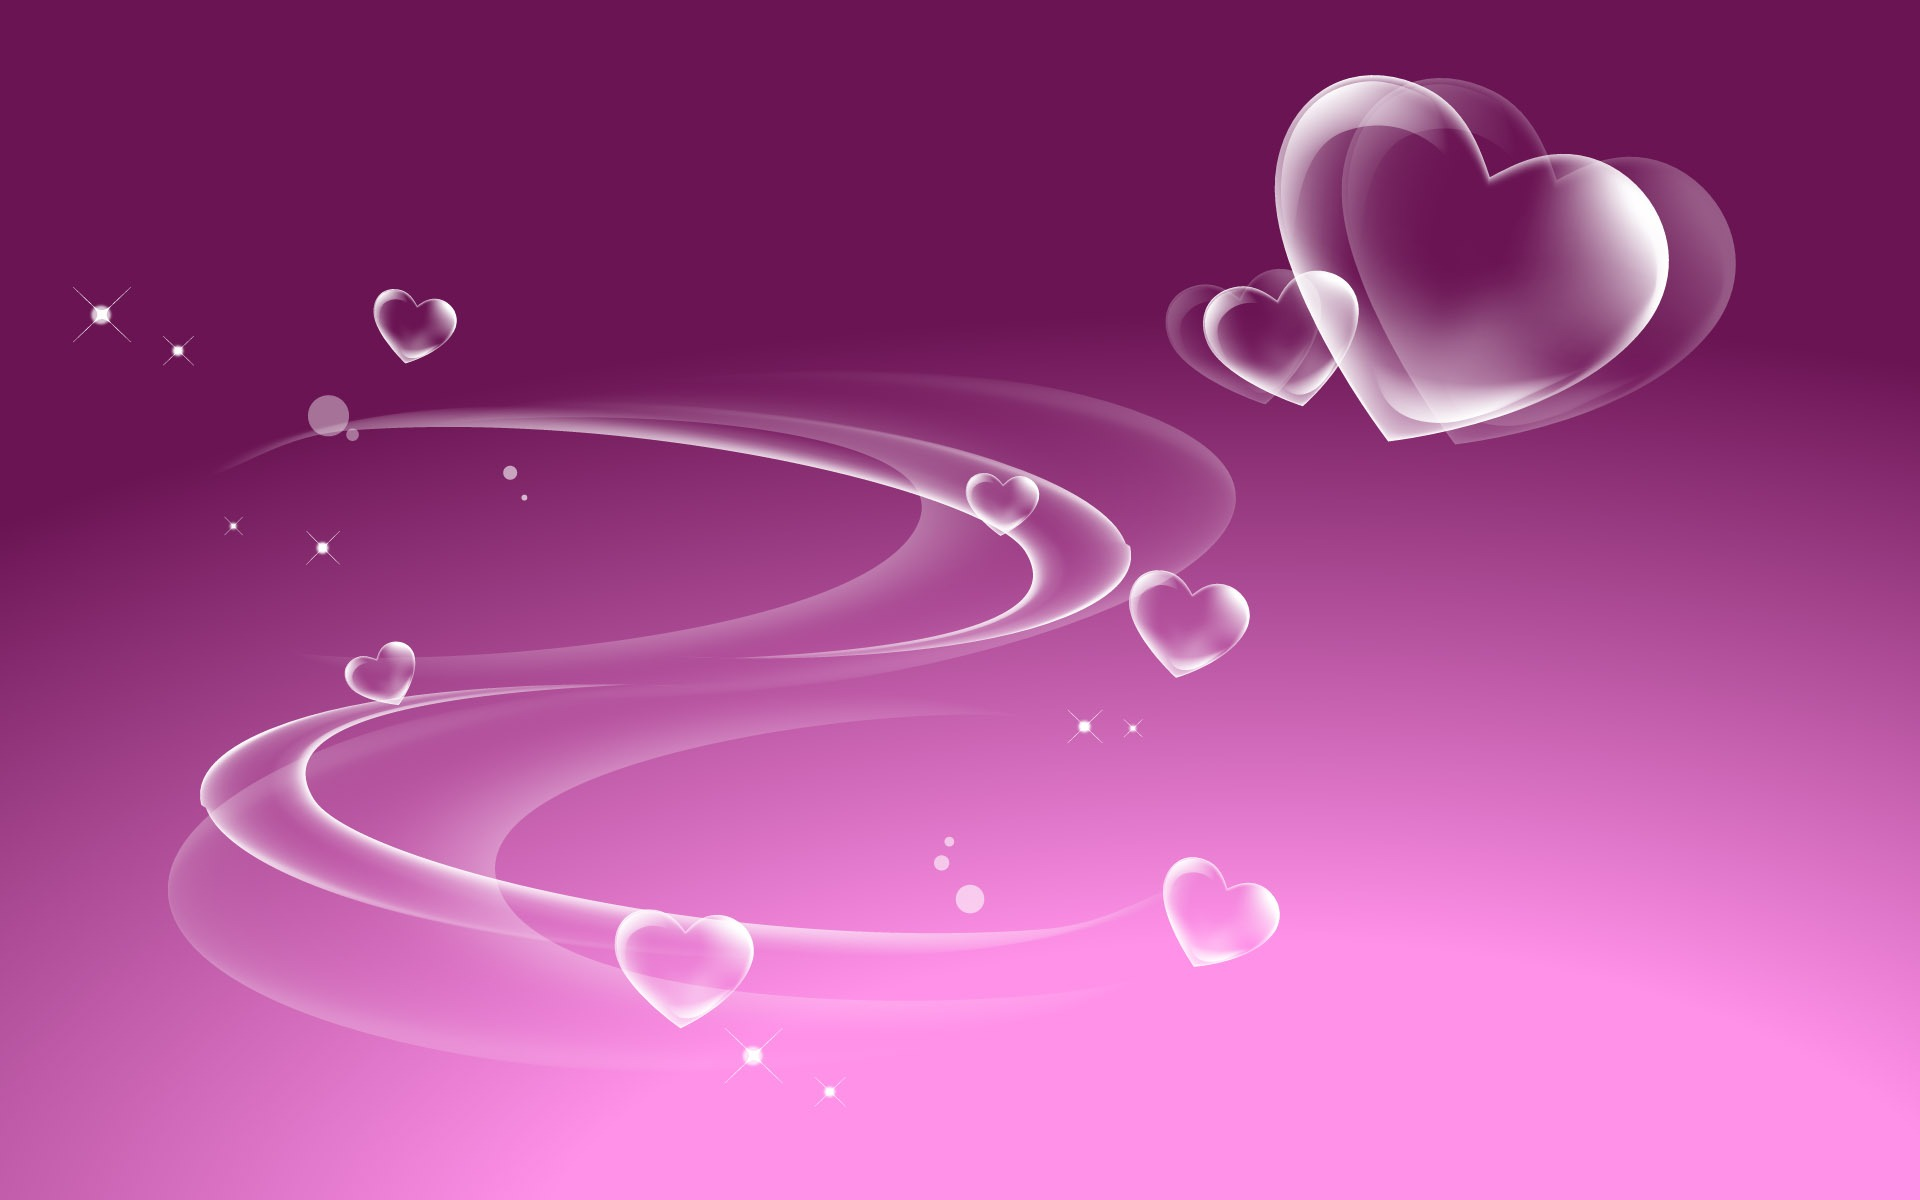 10 Top Cute Love Heart Wallpapers For Mobile Full Hd 1920: バレンタイン愛のテーマの壁紙(2) #2